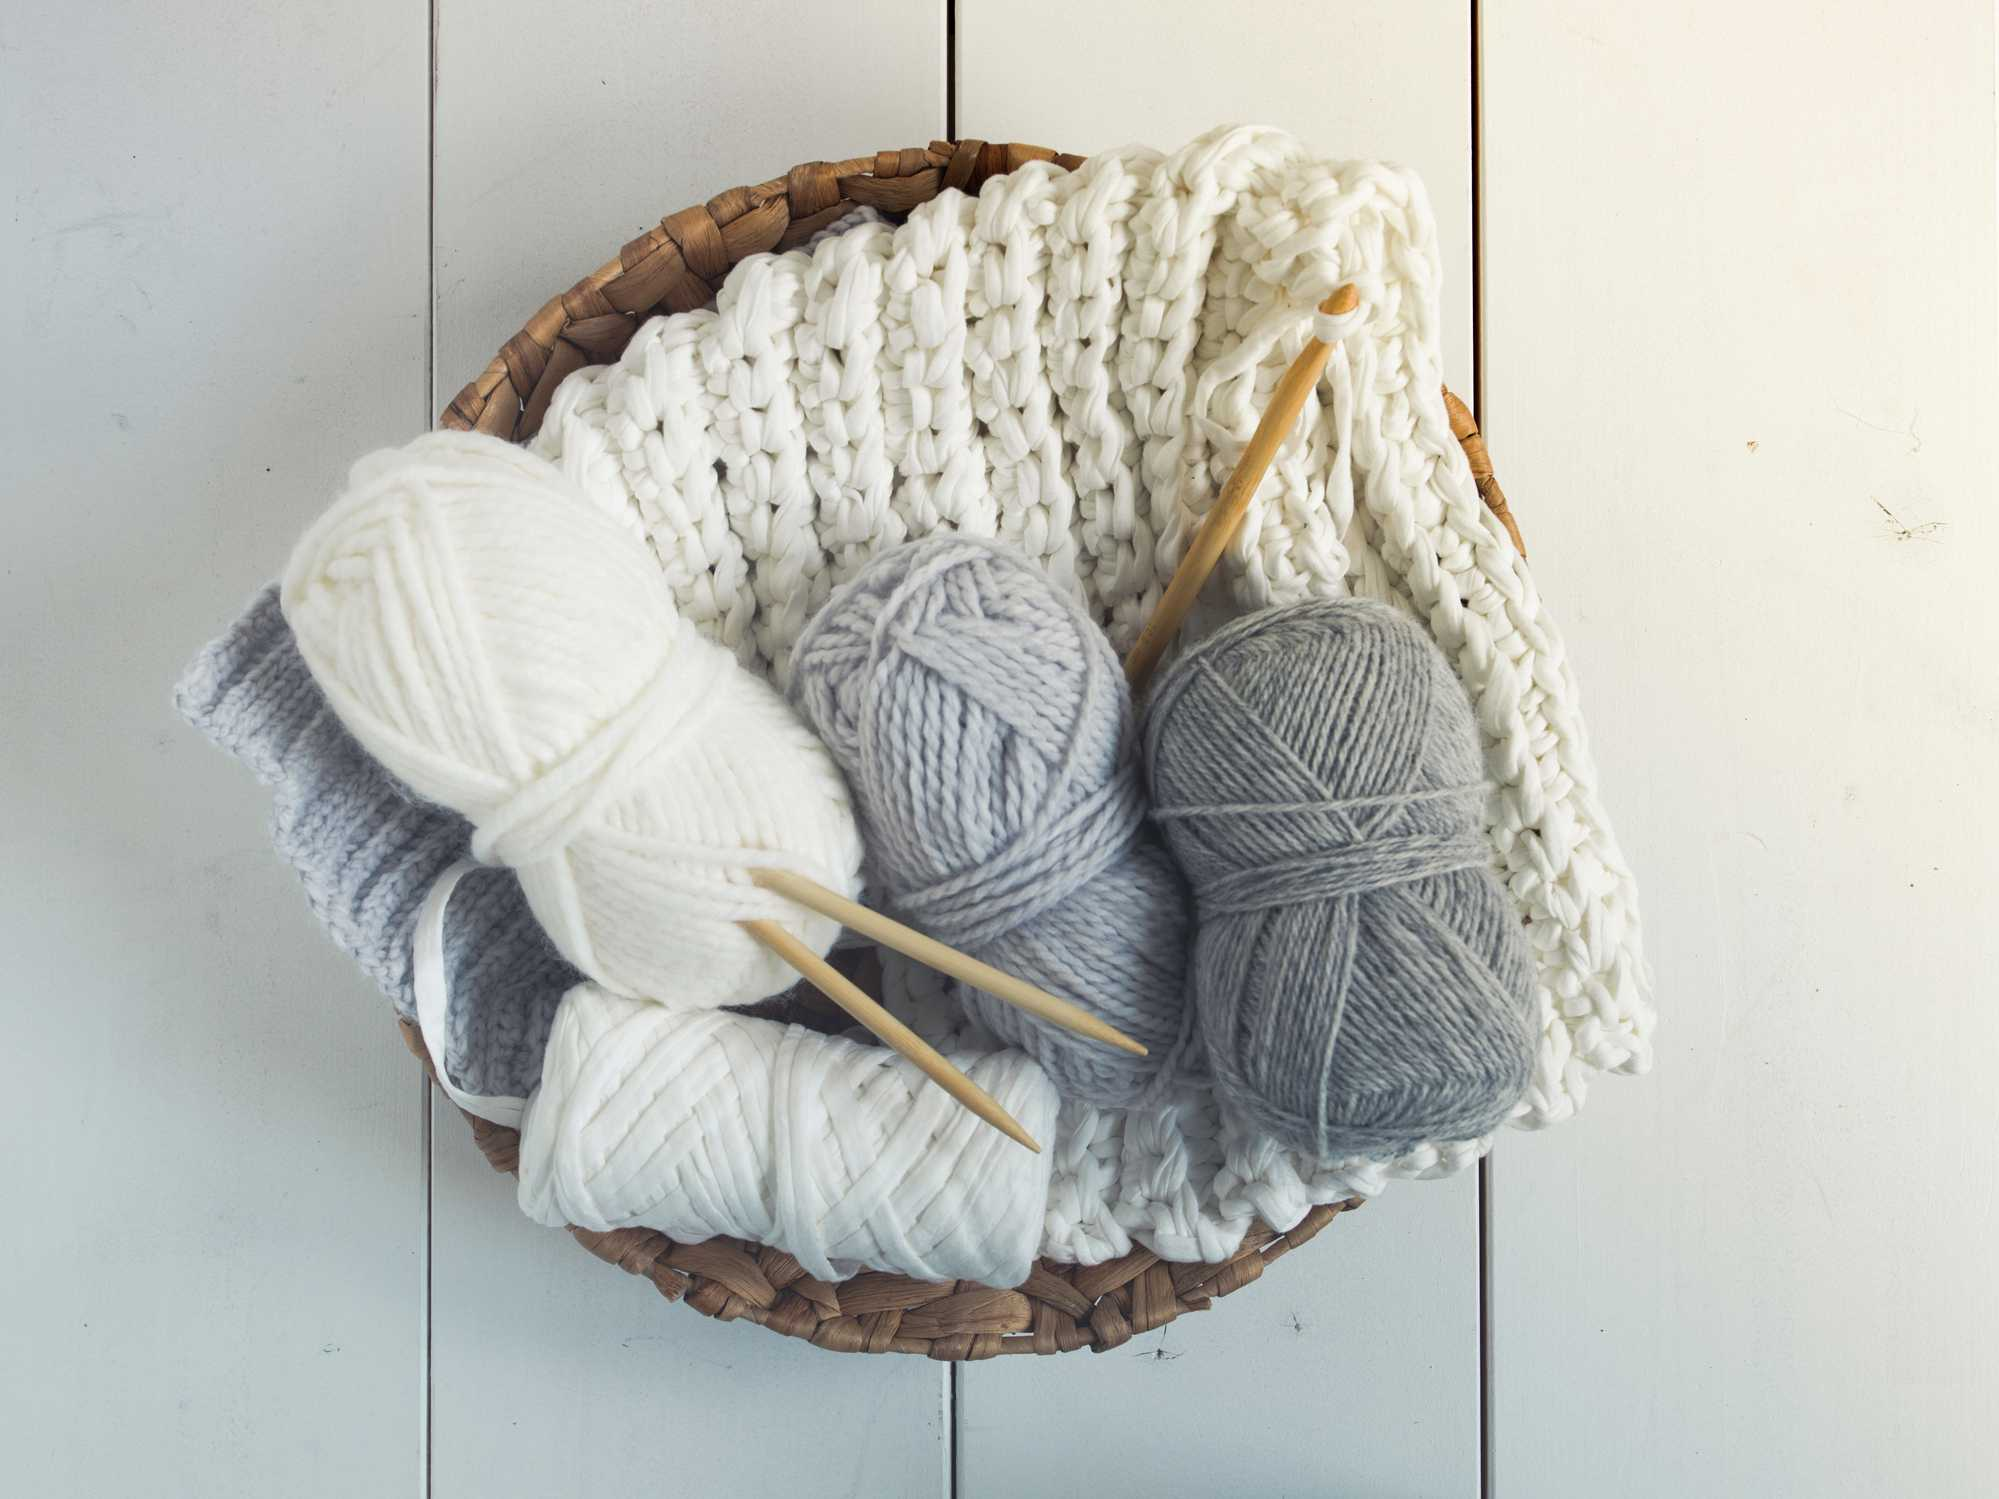 10 Great Gifts to Give a Knitter